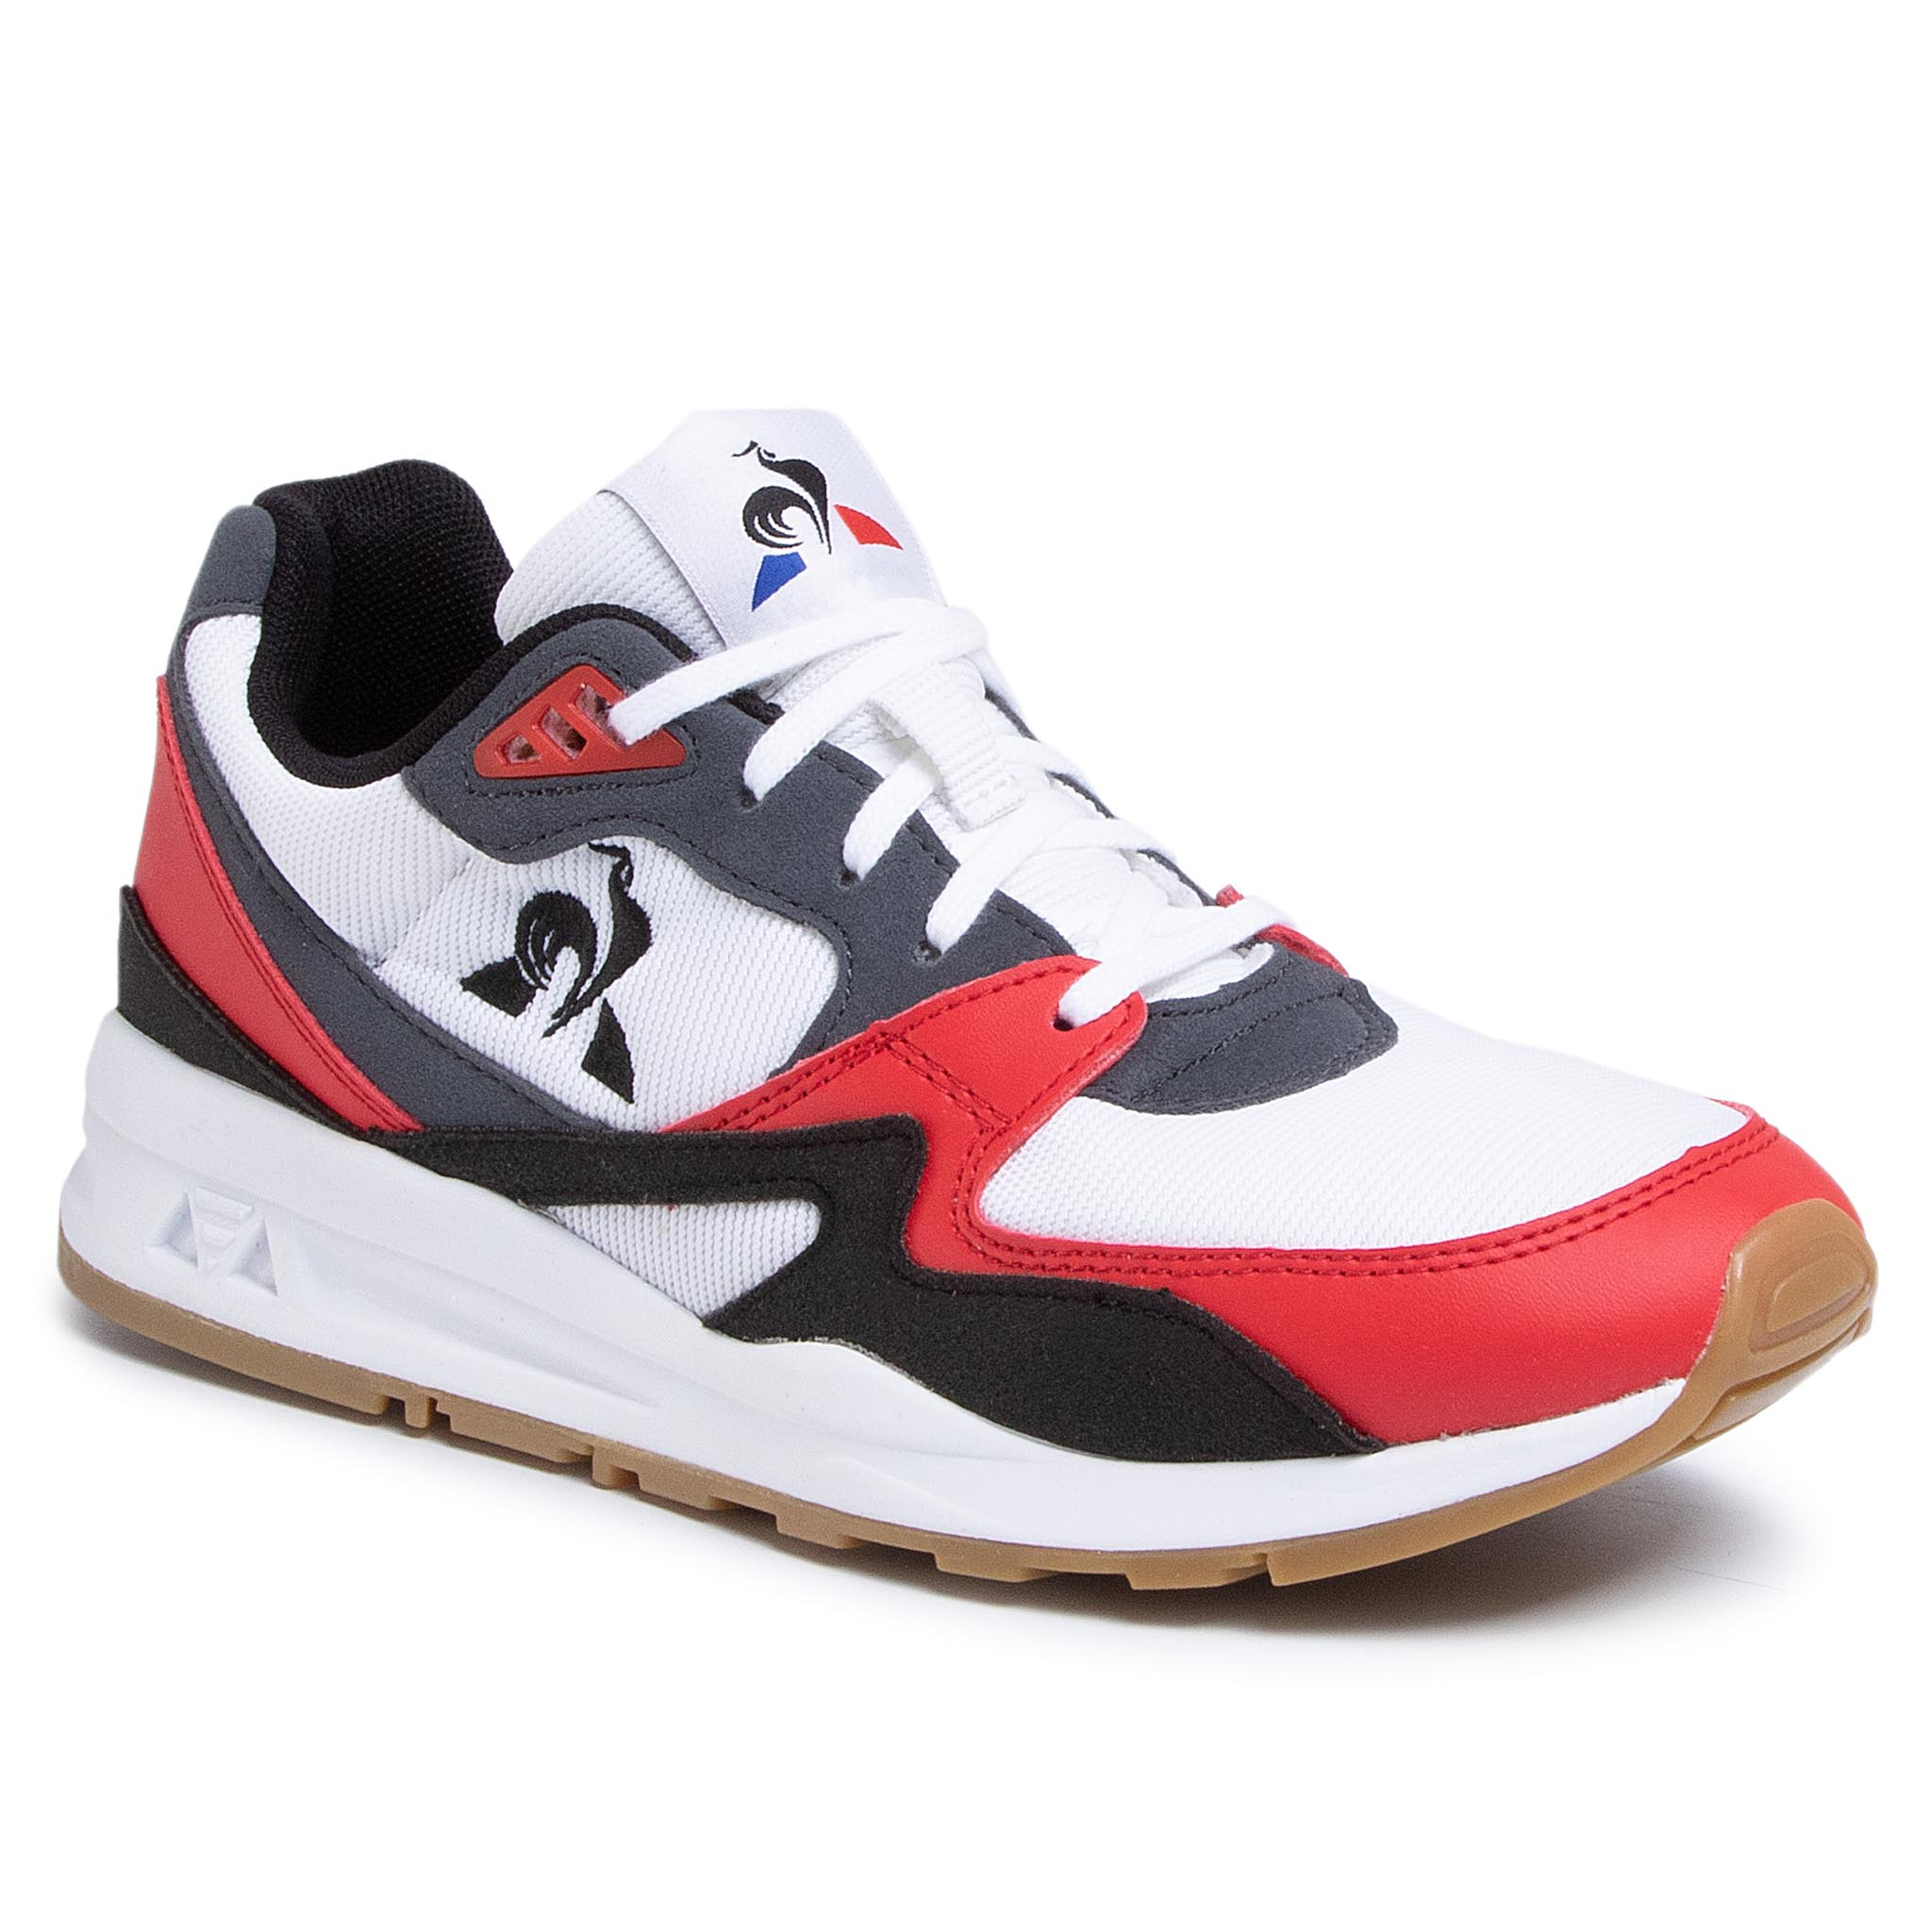 Sneaker Le Coq Sportif Sneakers LE COQ SPORTIF - Lcs R800 2010178  Optical White/Pure Red